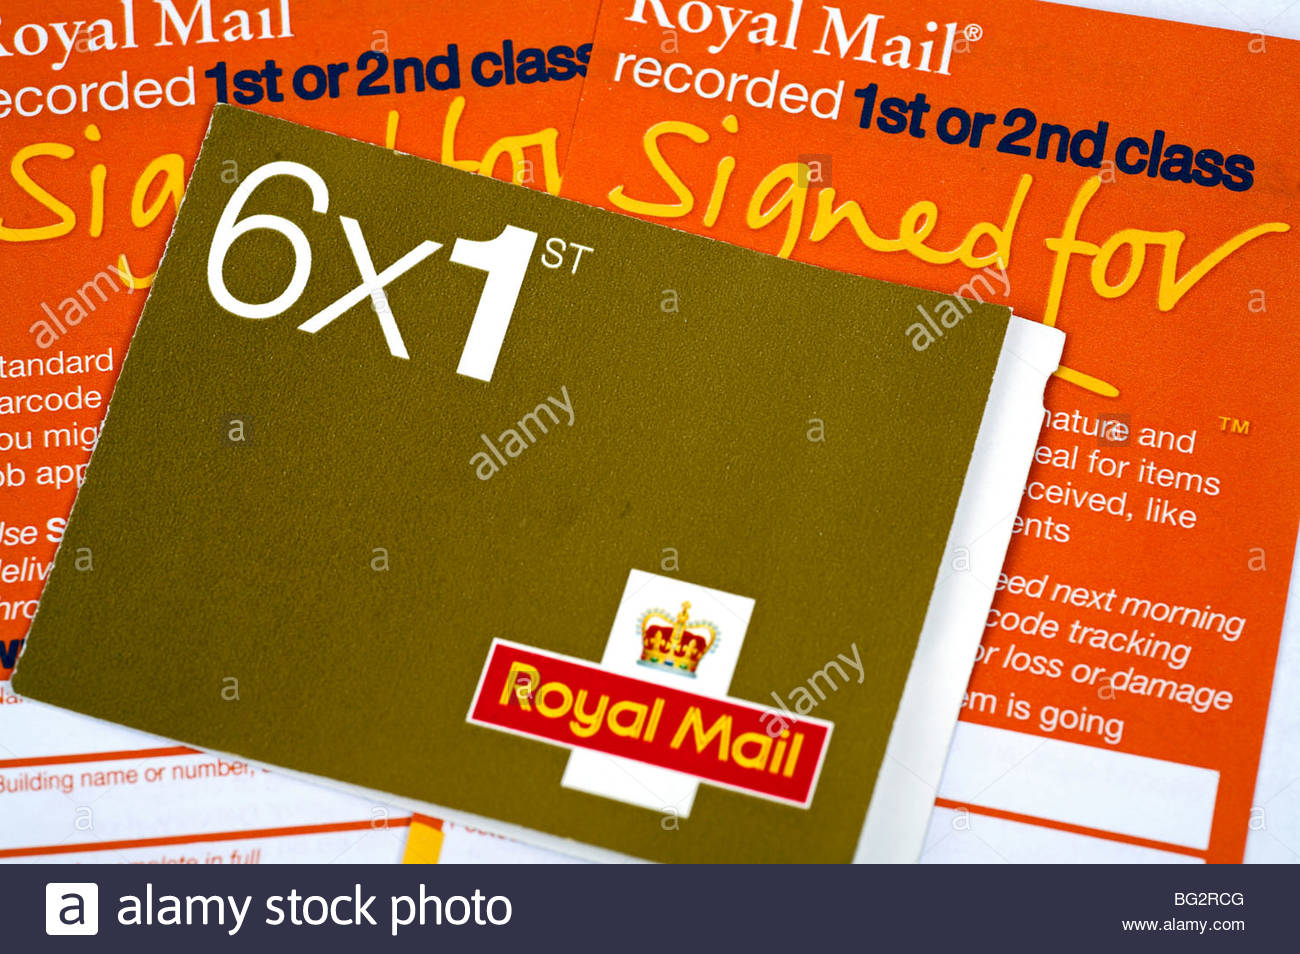 Book of UK 1st class stamps and Royal Mail recorded delivery forms - Stock Image